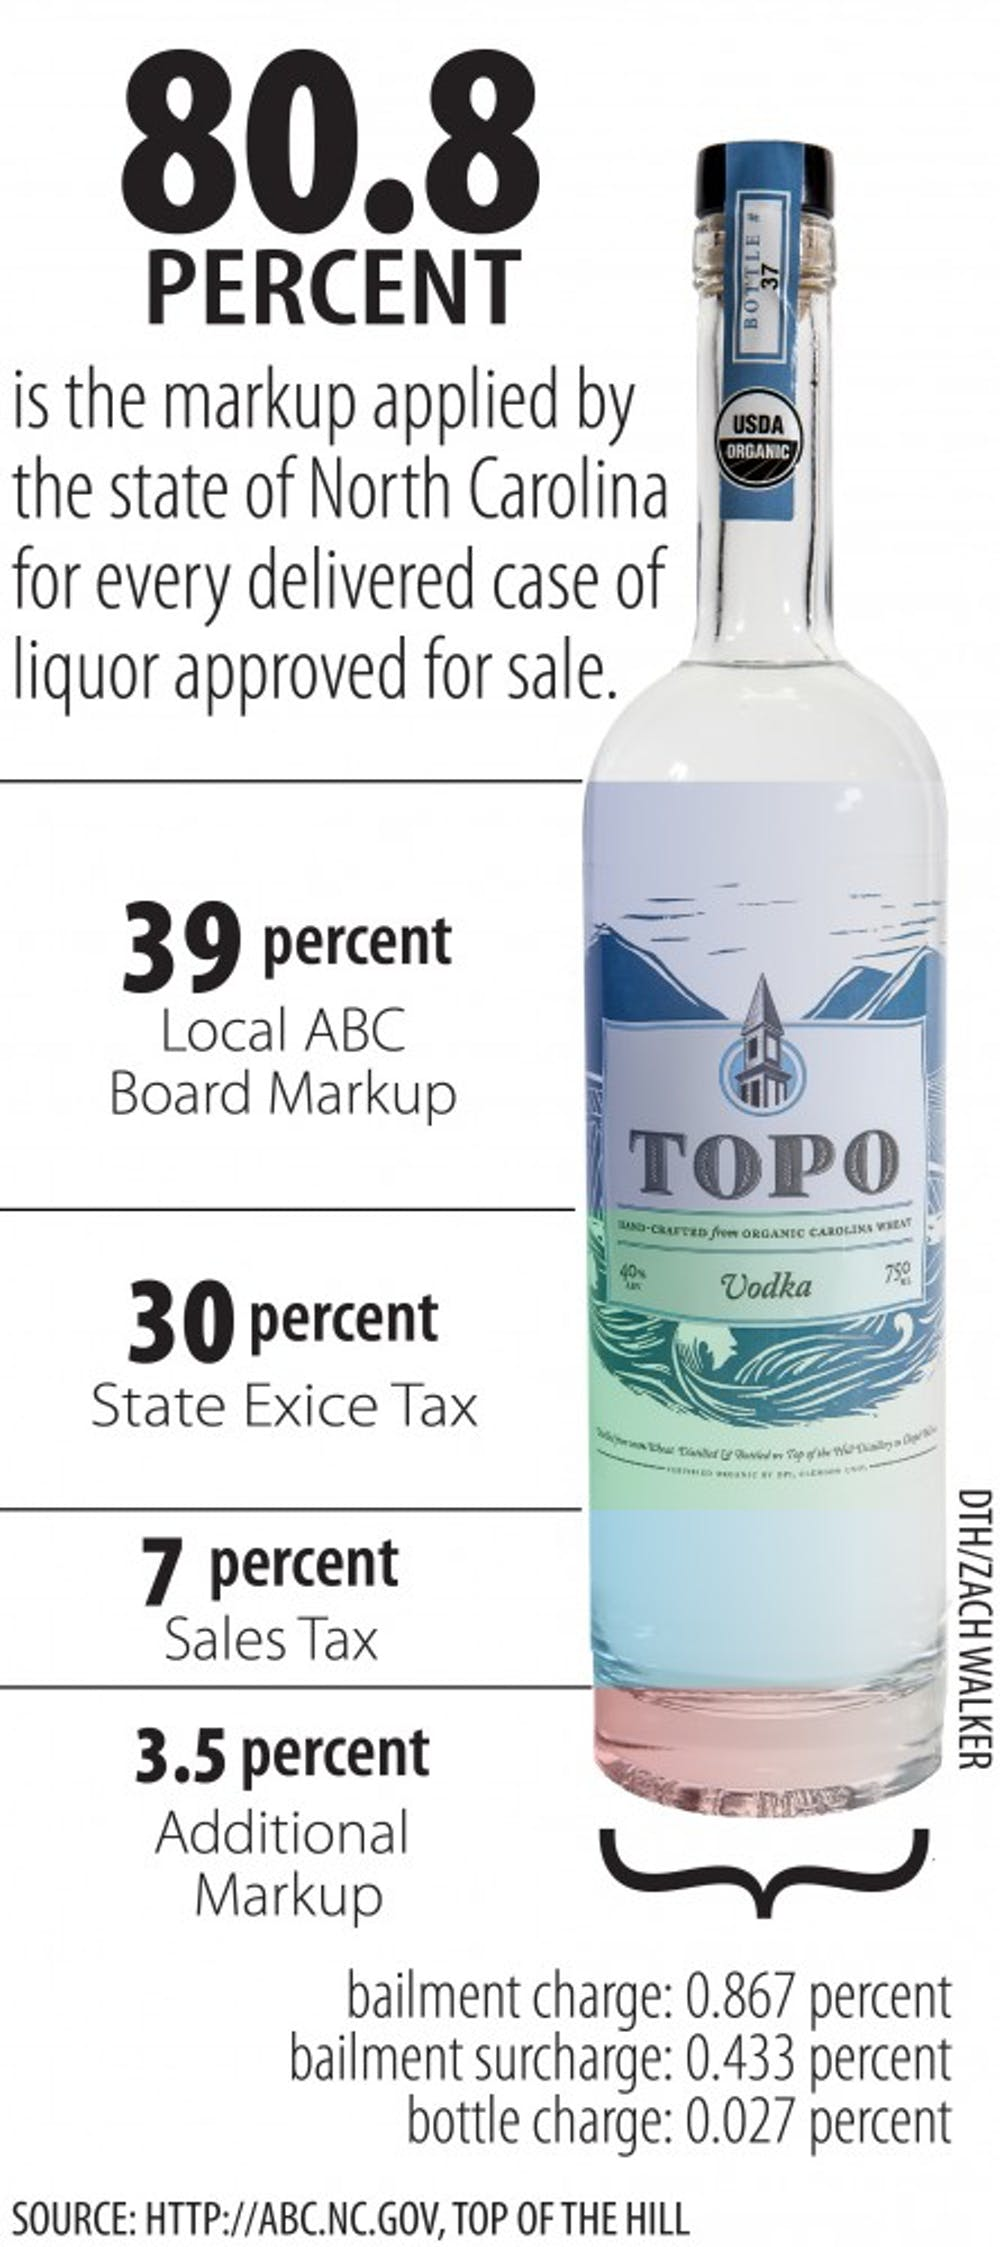 Top of the Hill owner drafts bill to sell liquor after distillery tours